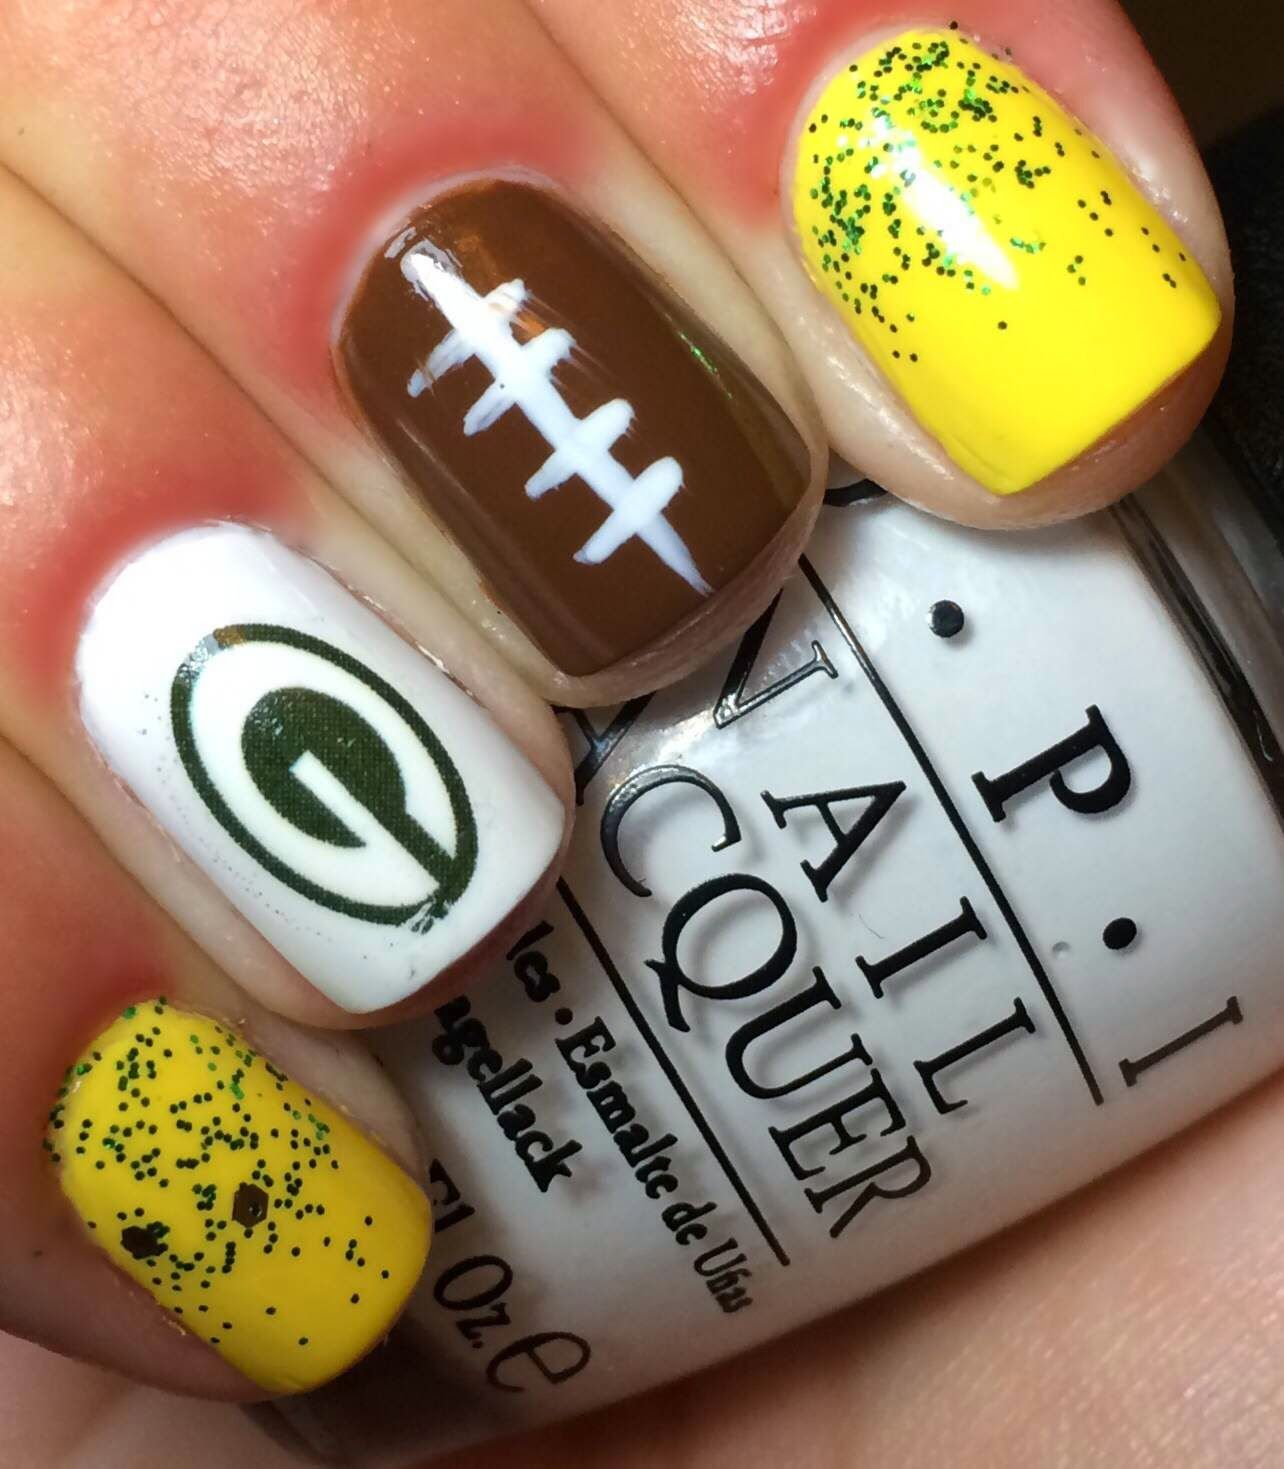 Nails by an opi addict green bay packers nails by an opi nails by an opi addict green bay packers prinsesfo Images